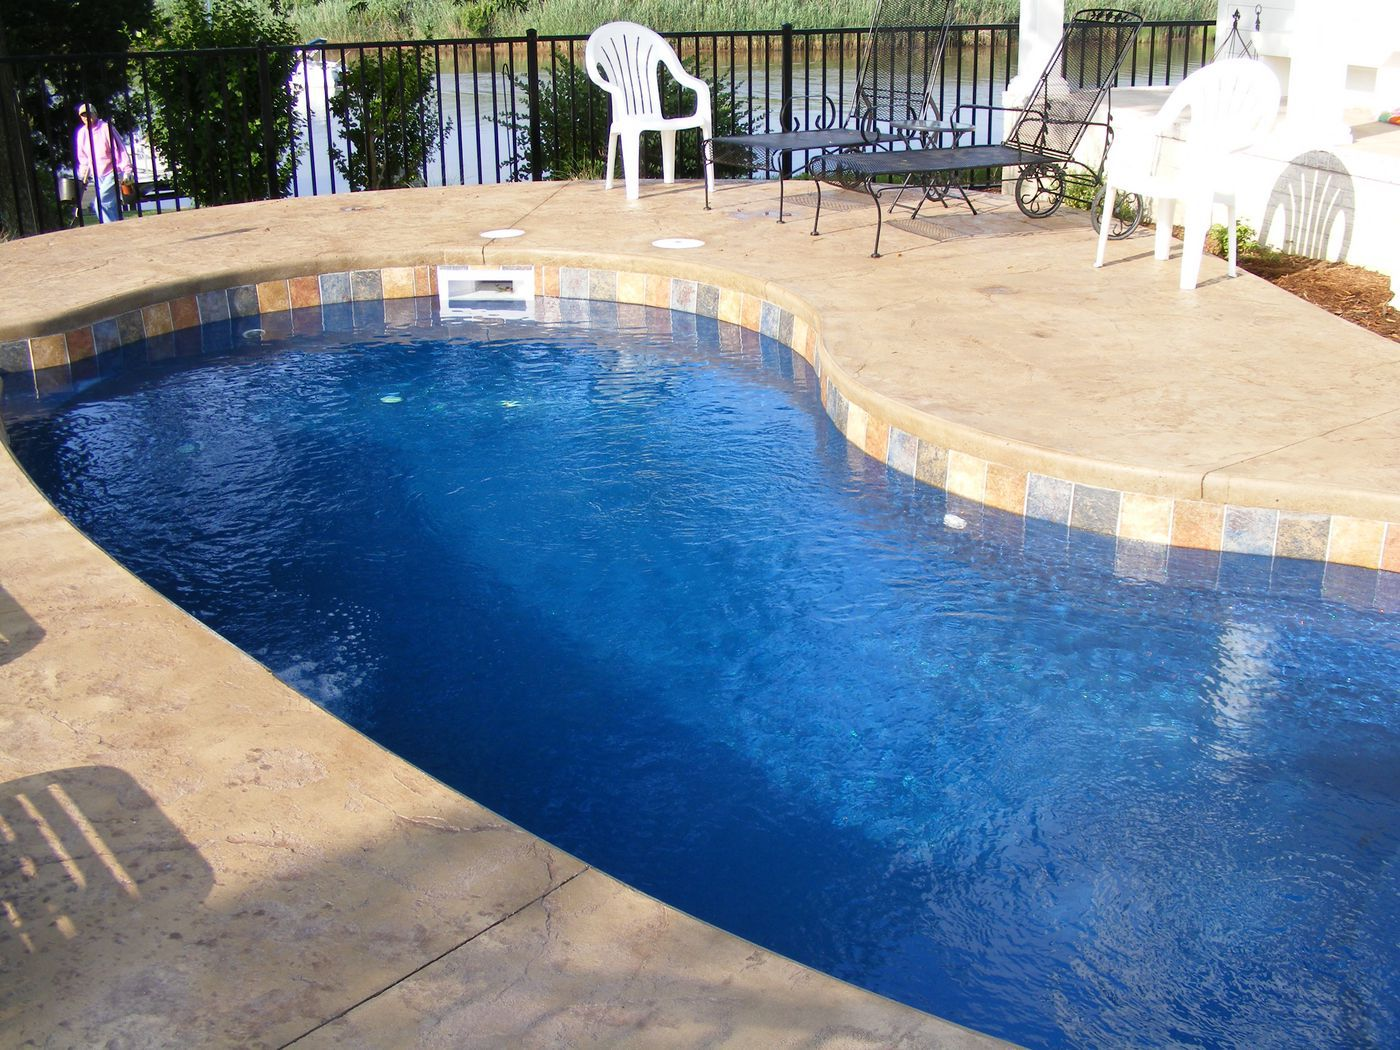 Fiberglass Pool Coping: Paver vs. Cantilevered Concrete